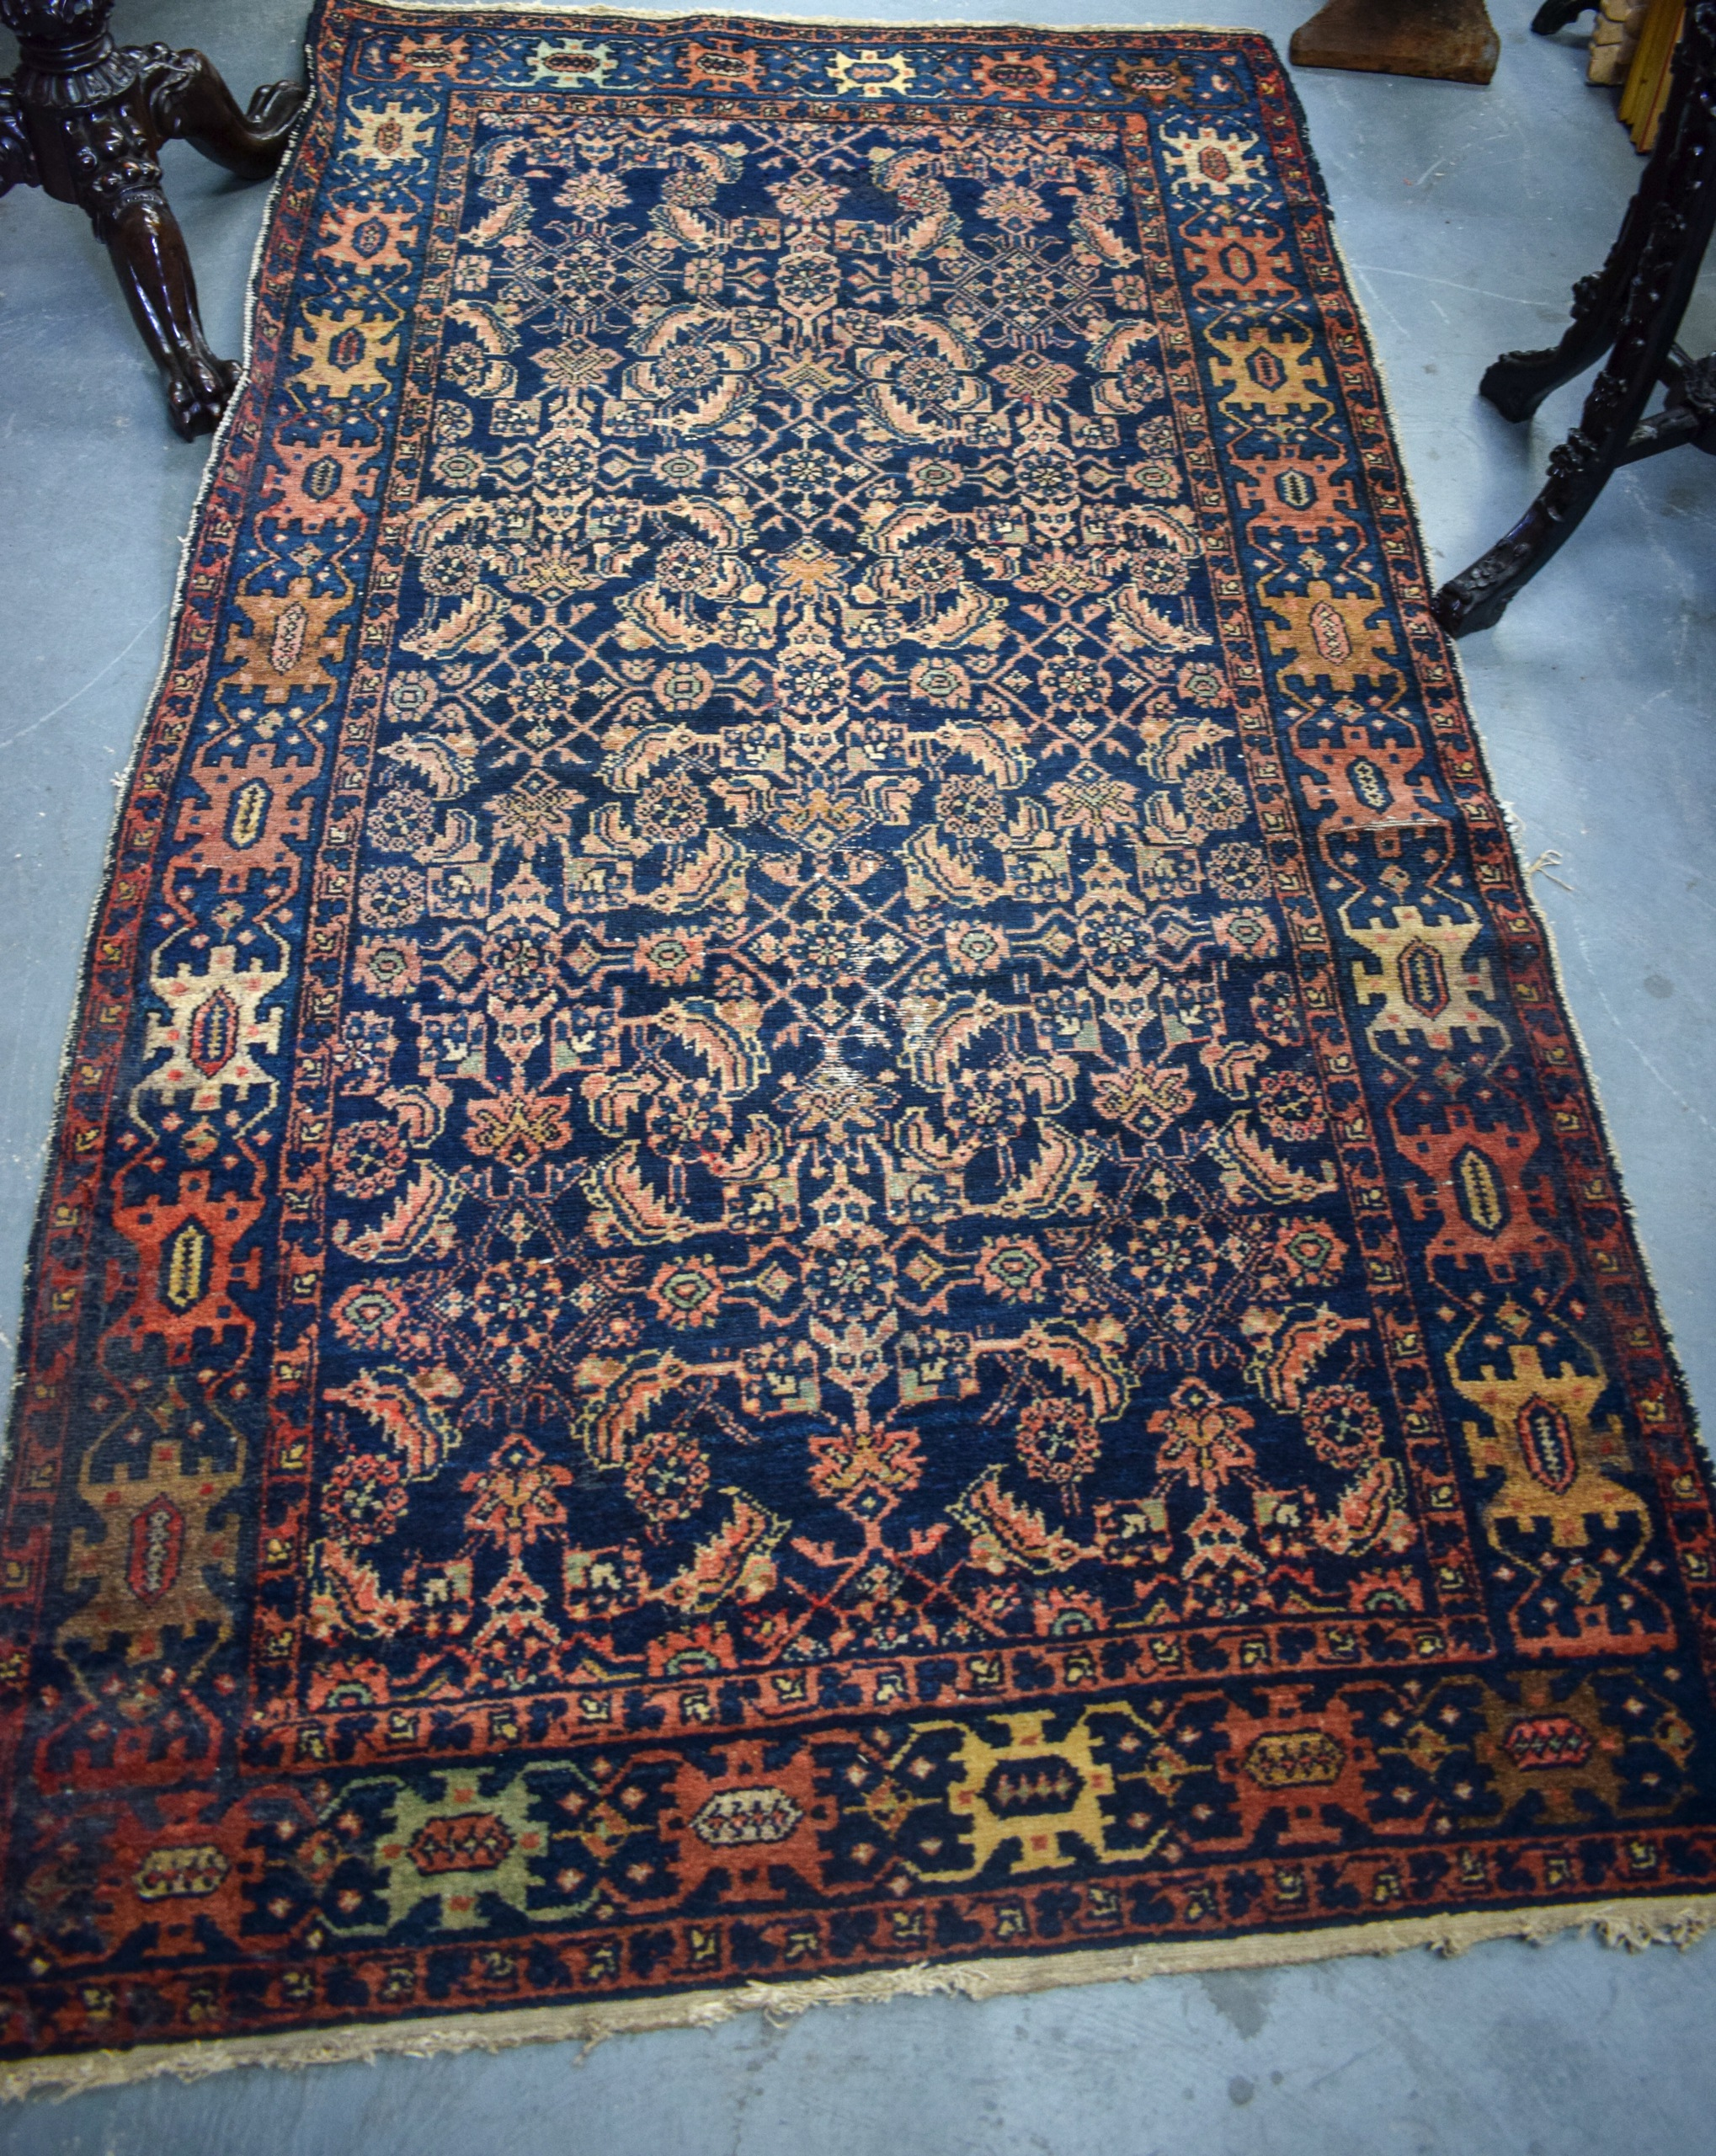 Lot 2600E - AN ANTIQUE BLUE GROUND PERSIAN HERATI RUG, decorated with symbols and motifs. 201 cm x 102 cm.